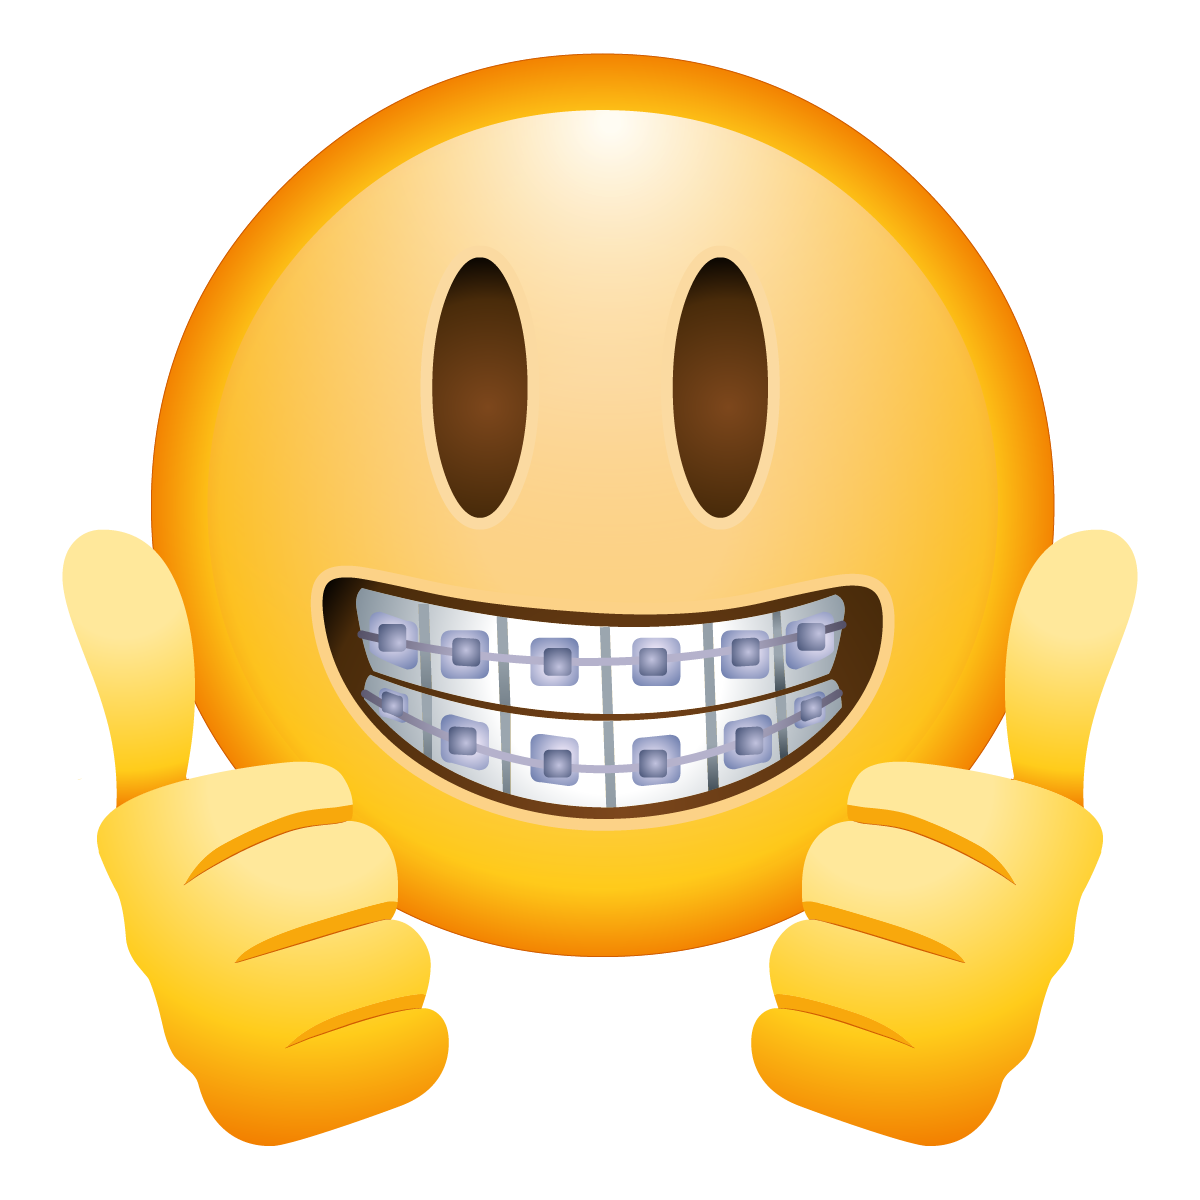 jpg free library Gum clipart emoji. This is my new